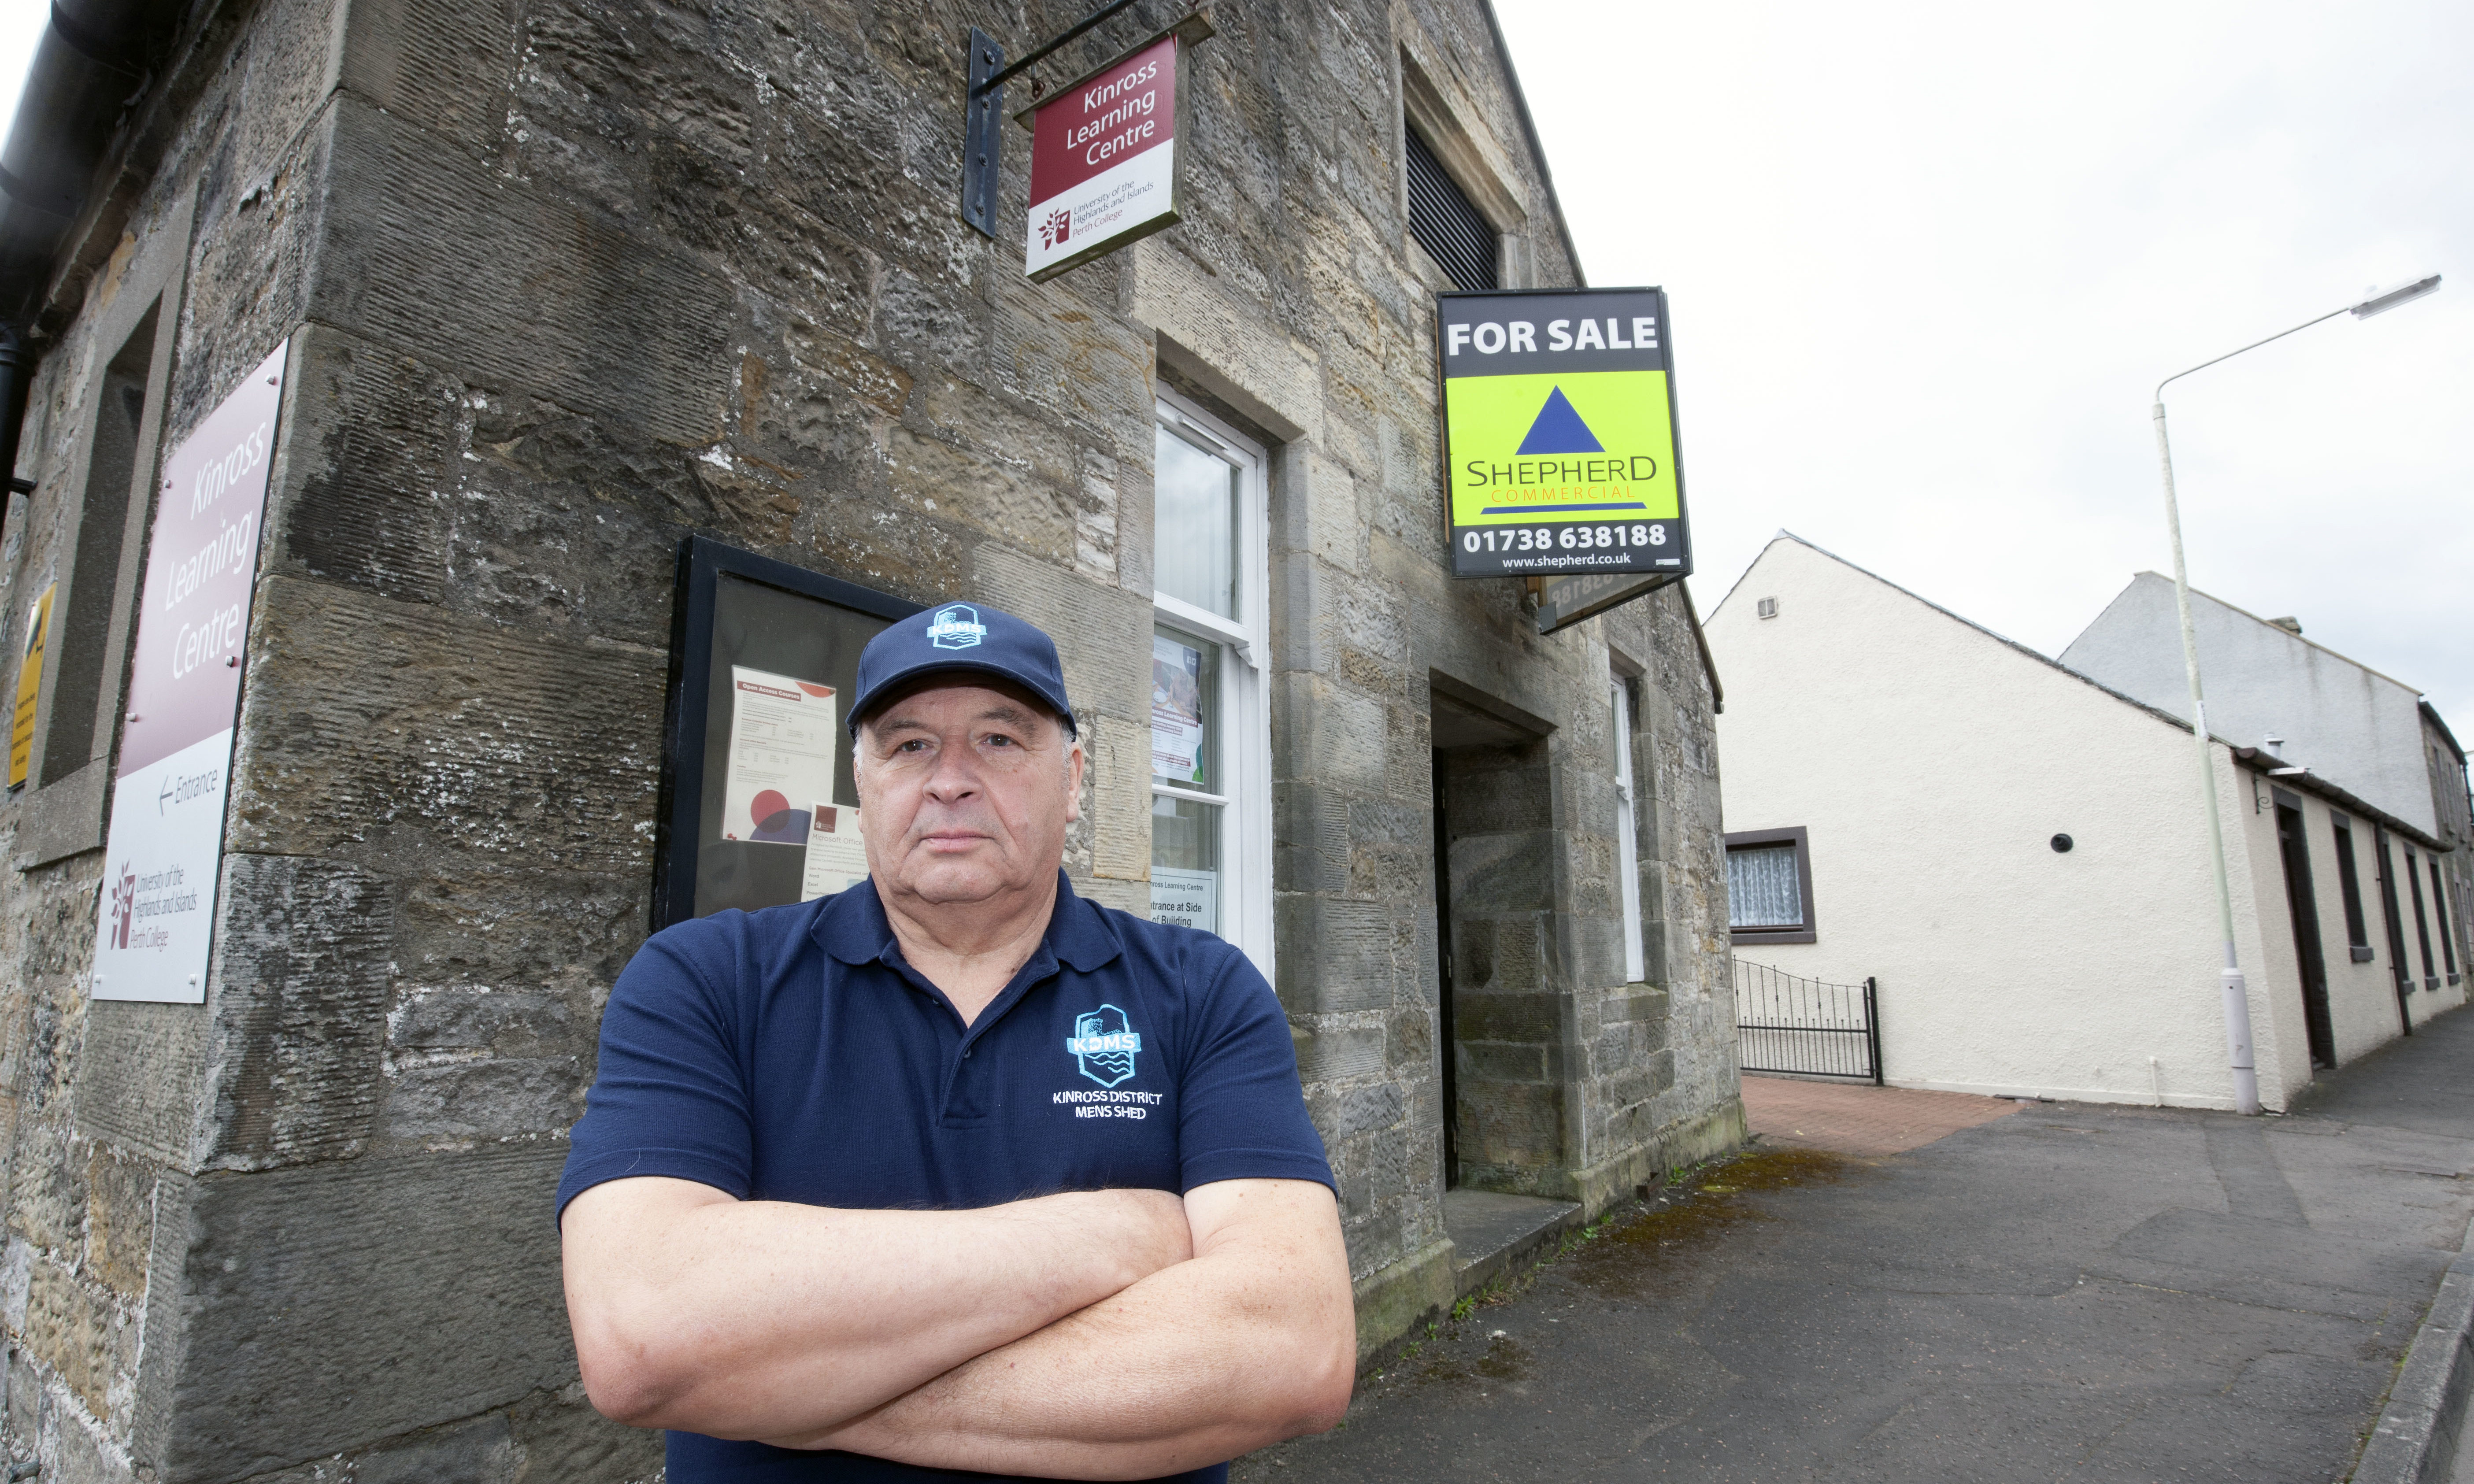 Roy Gilmour of Kinross and District Men's Shed confirmed the group are no longer trying to acquire the former learning centre.